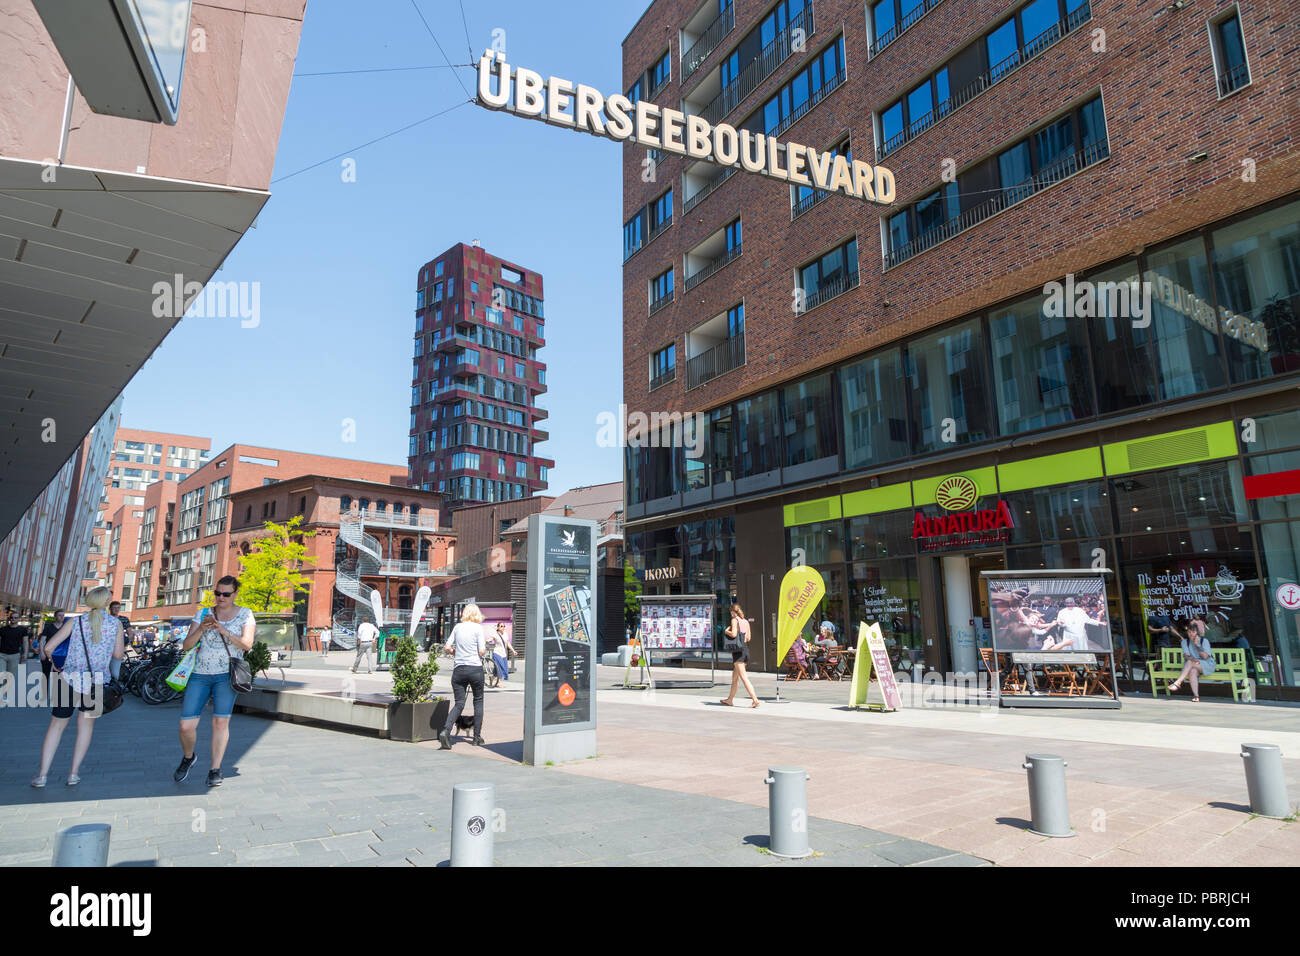 Shopping street Überseeboulevard, Hafen-City, Hamburg - Stock Image